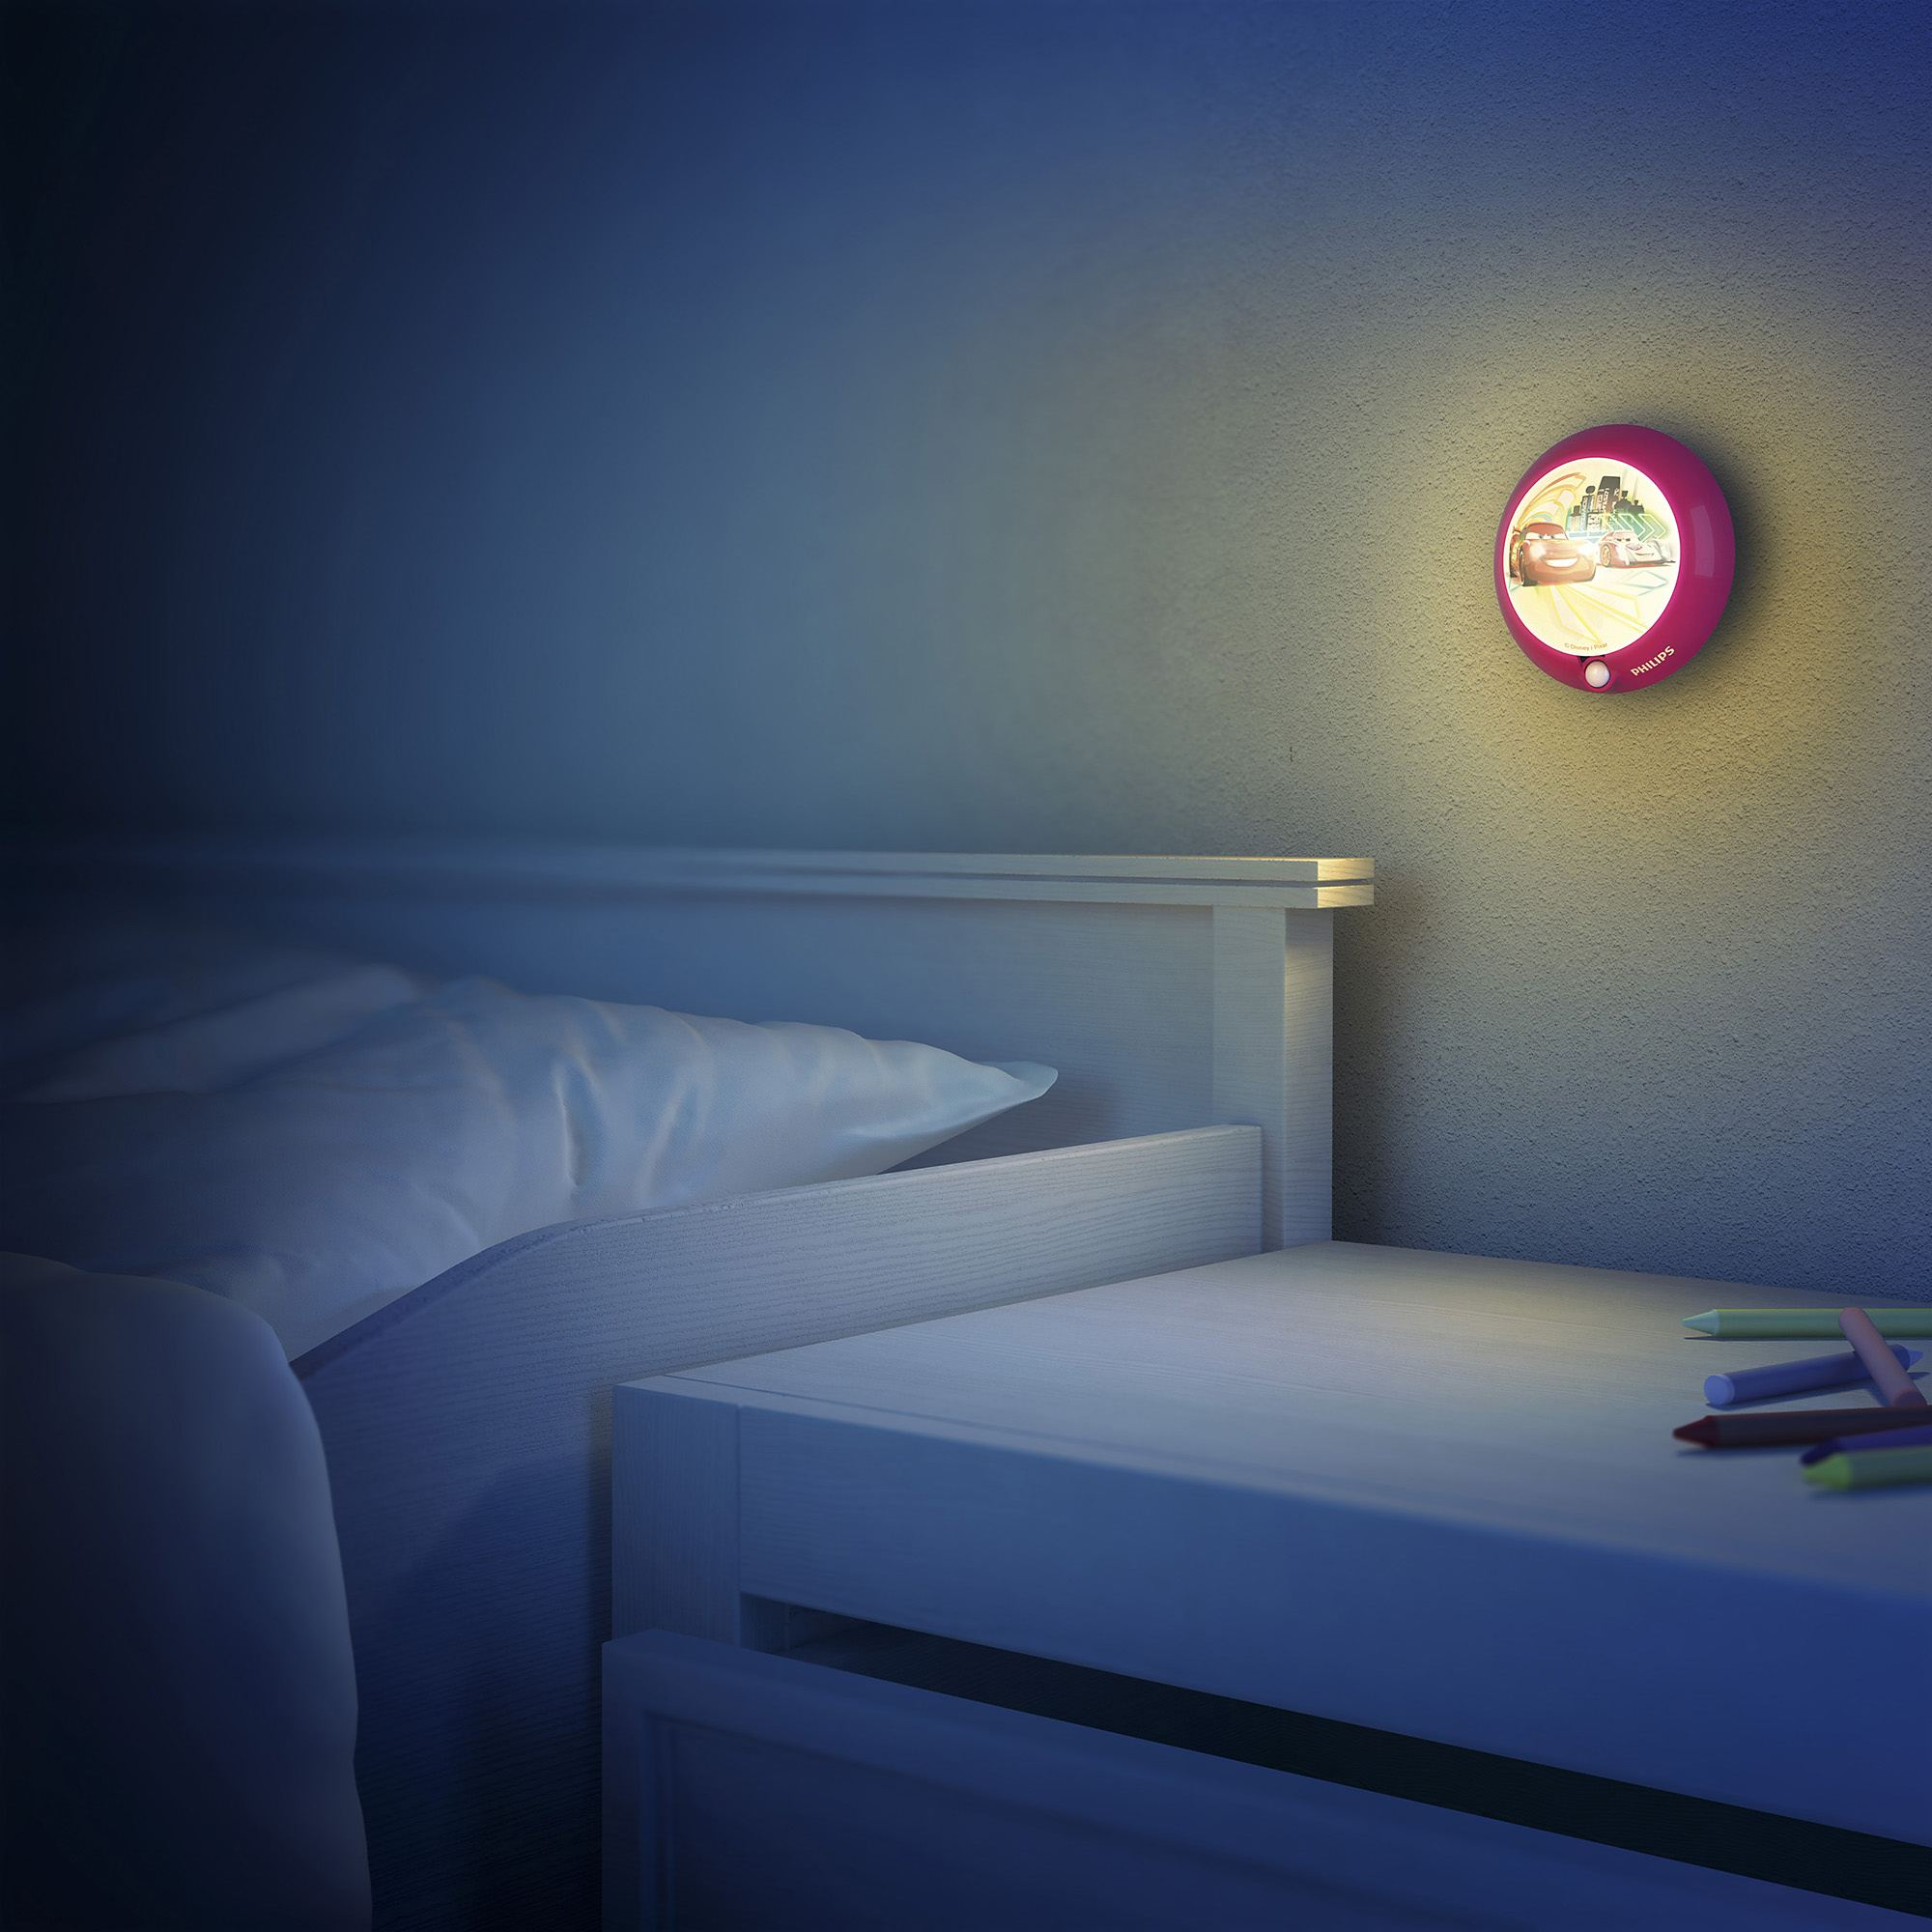 Childrens Wall Night Lights Philips Disney Cars Children 39s Led Sensor Night Light